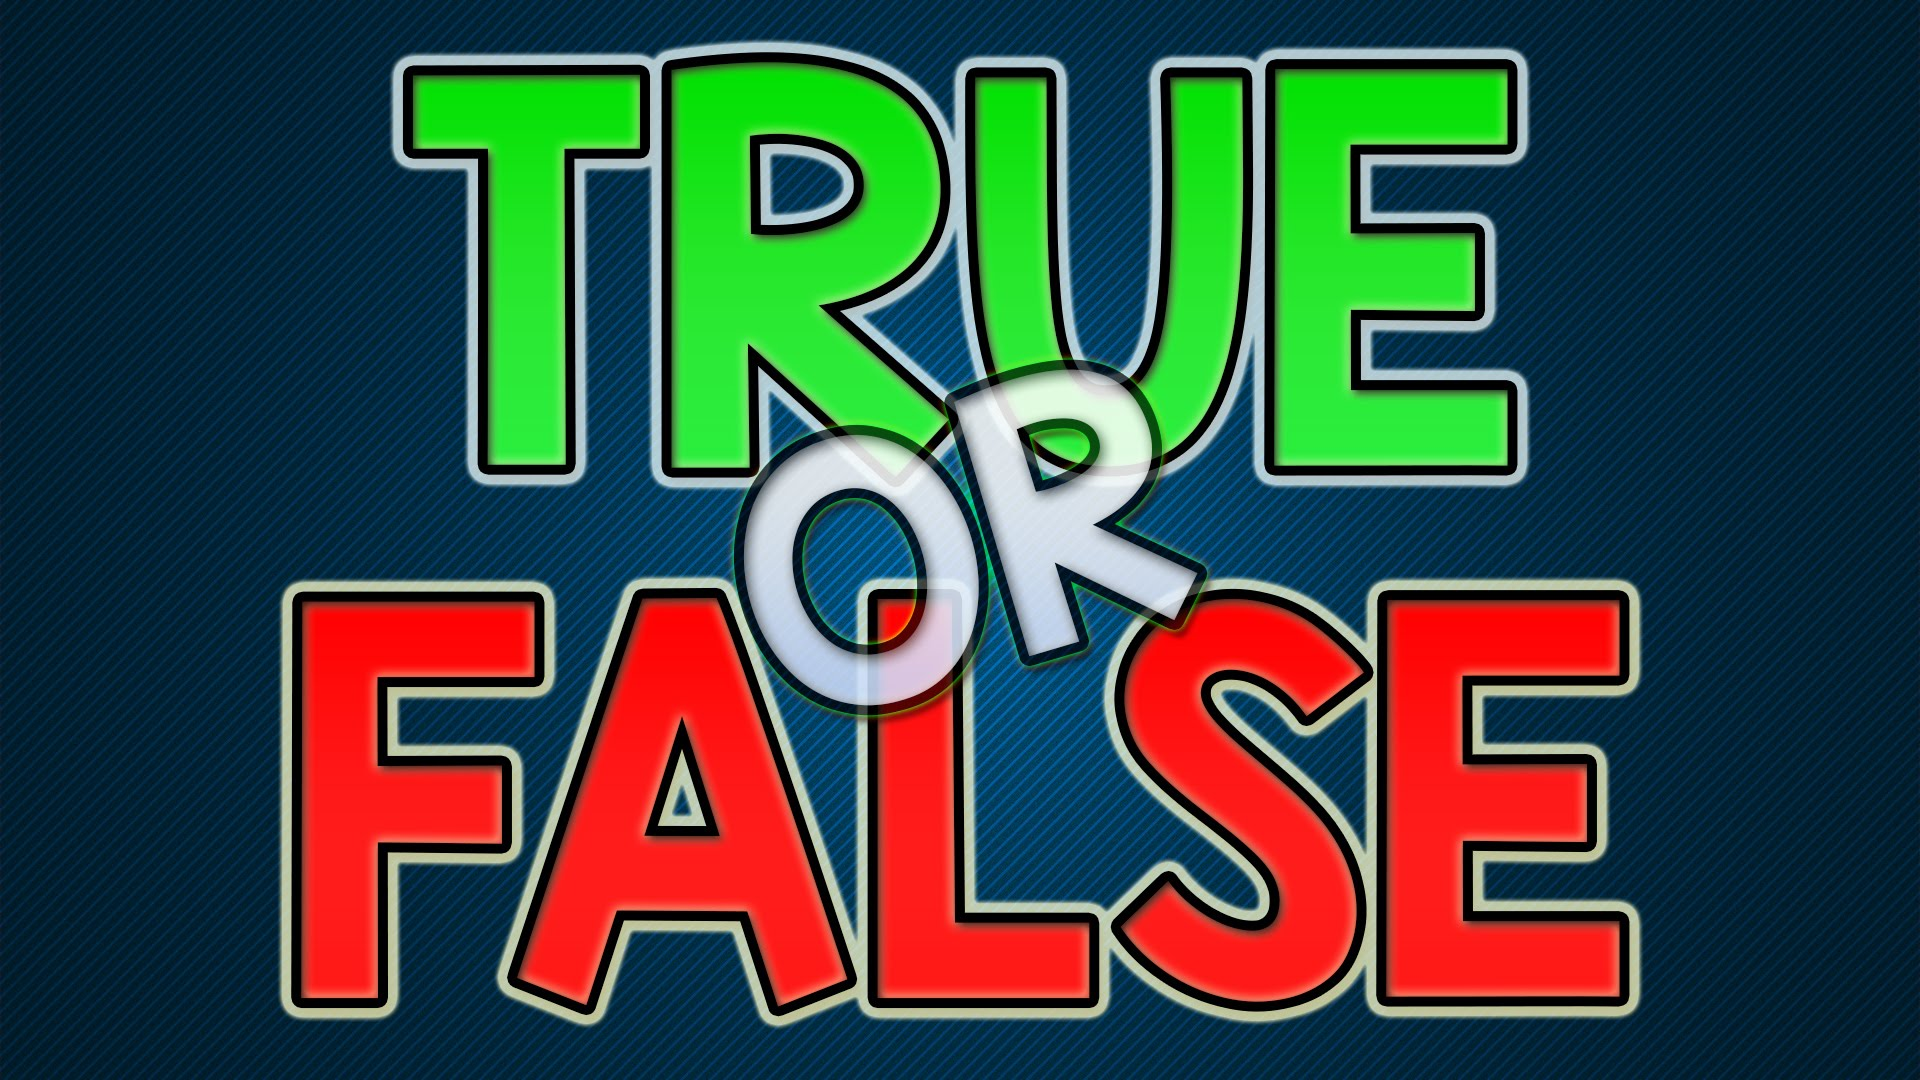 true and false questions Tips for responding to true-false questions: every part of a true sentence must be true read each statement carefully and pay close attention to negatives, qualifiers, absolutes, and long strings of statements.